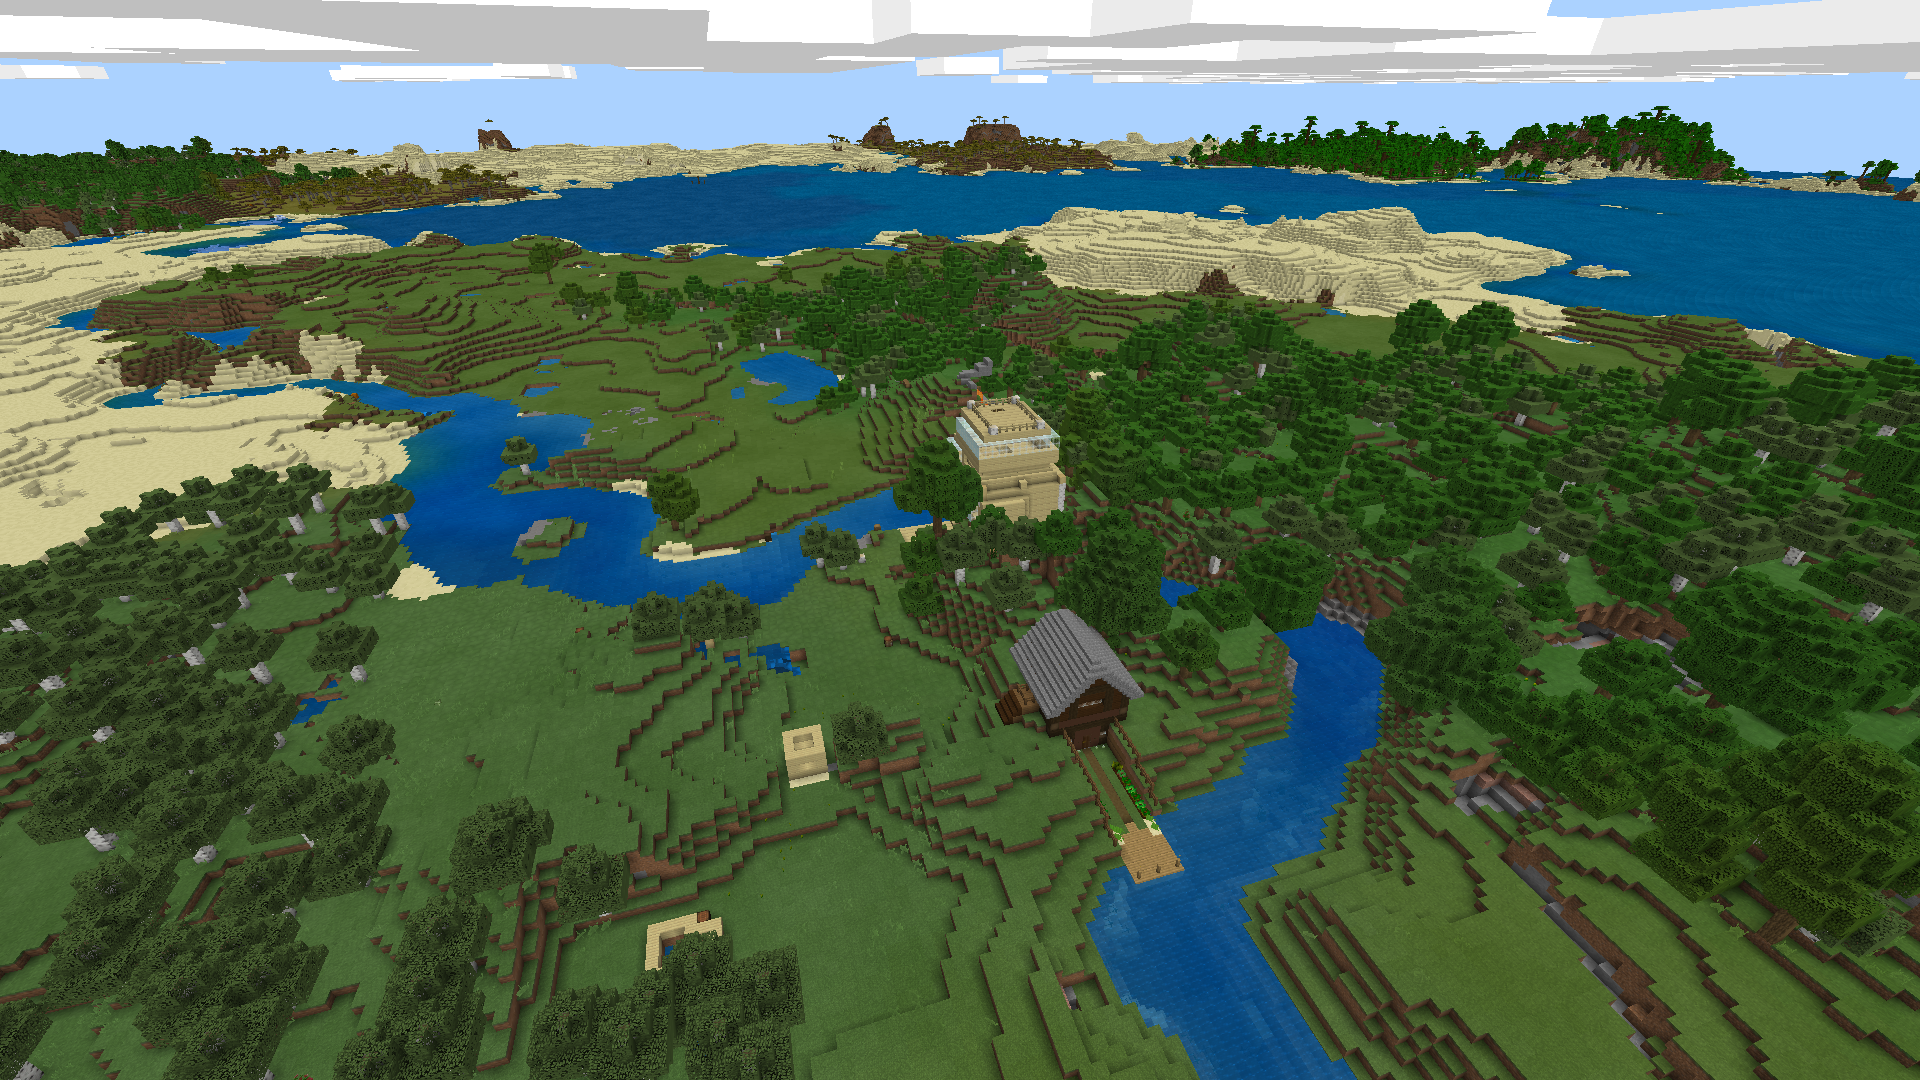 Screenshot from the game Minecraft, depicting a mostly empty landscape with a few buildings here and there.